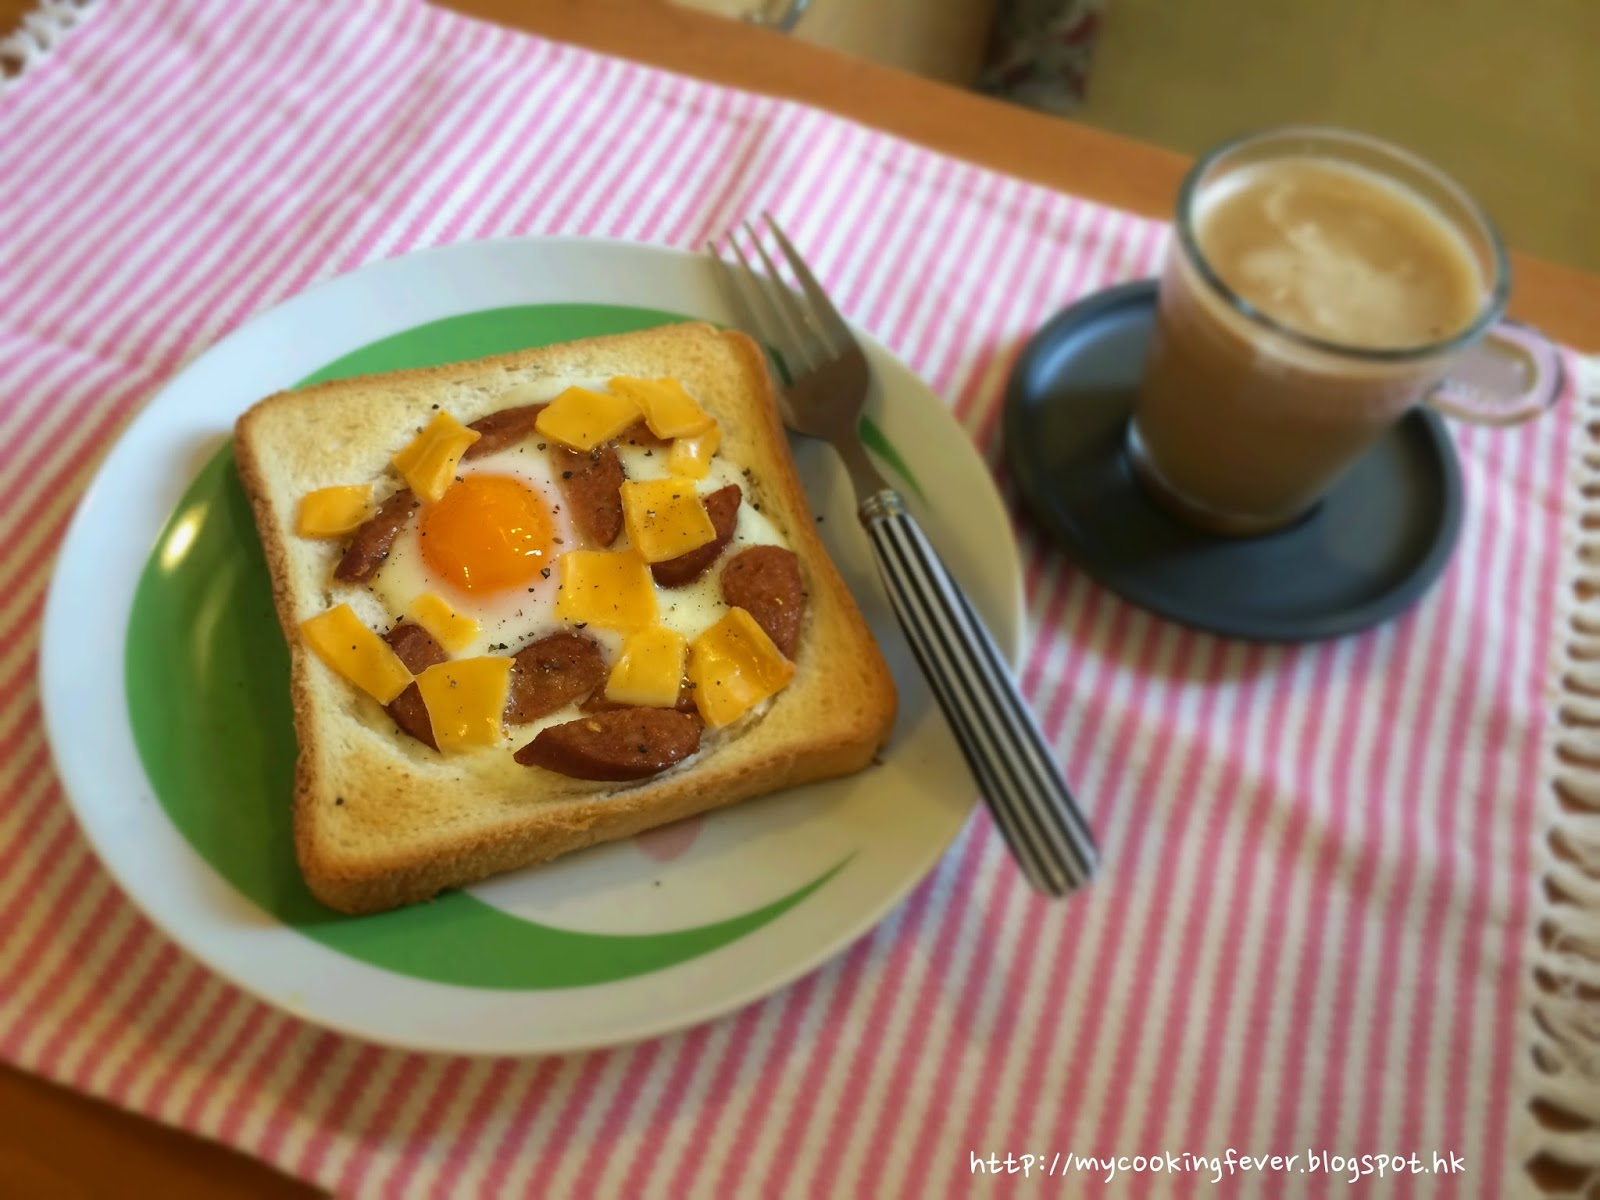 Baked Egg Sausage & Cheese Toast